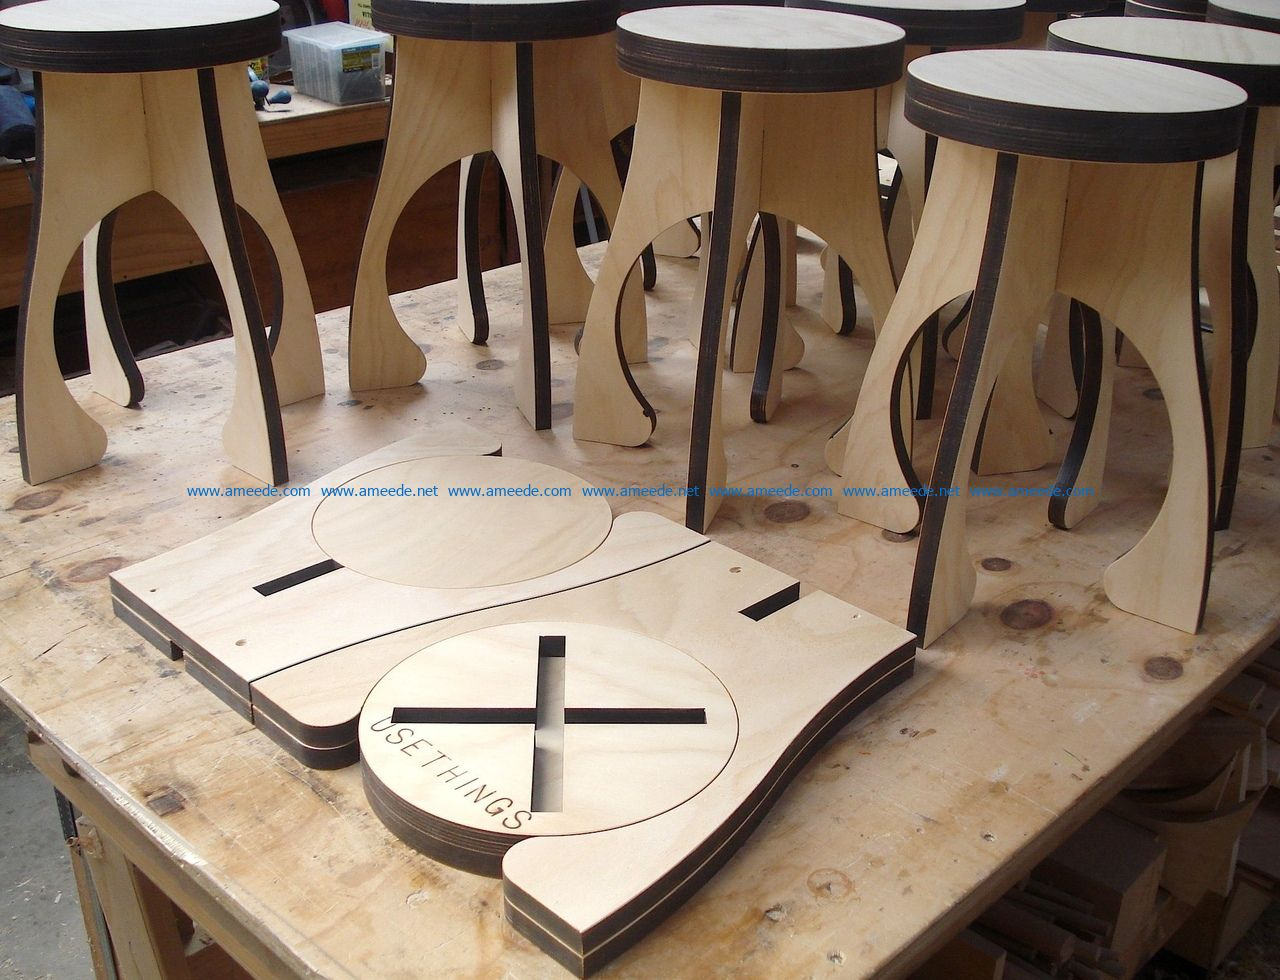 Folding stools dxf free vector download for Laser cut CNC